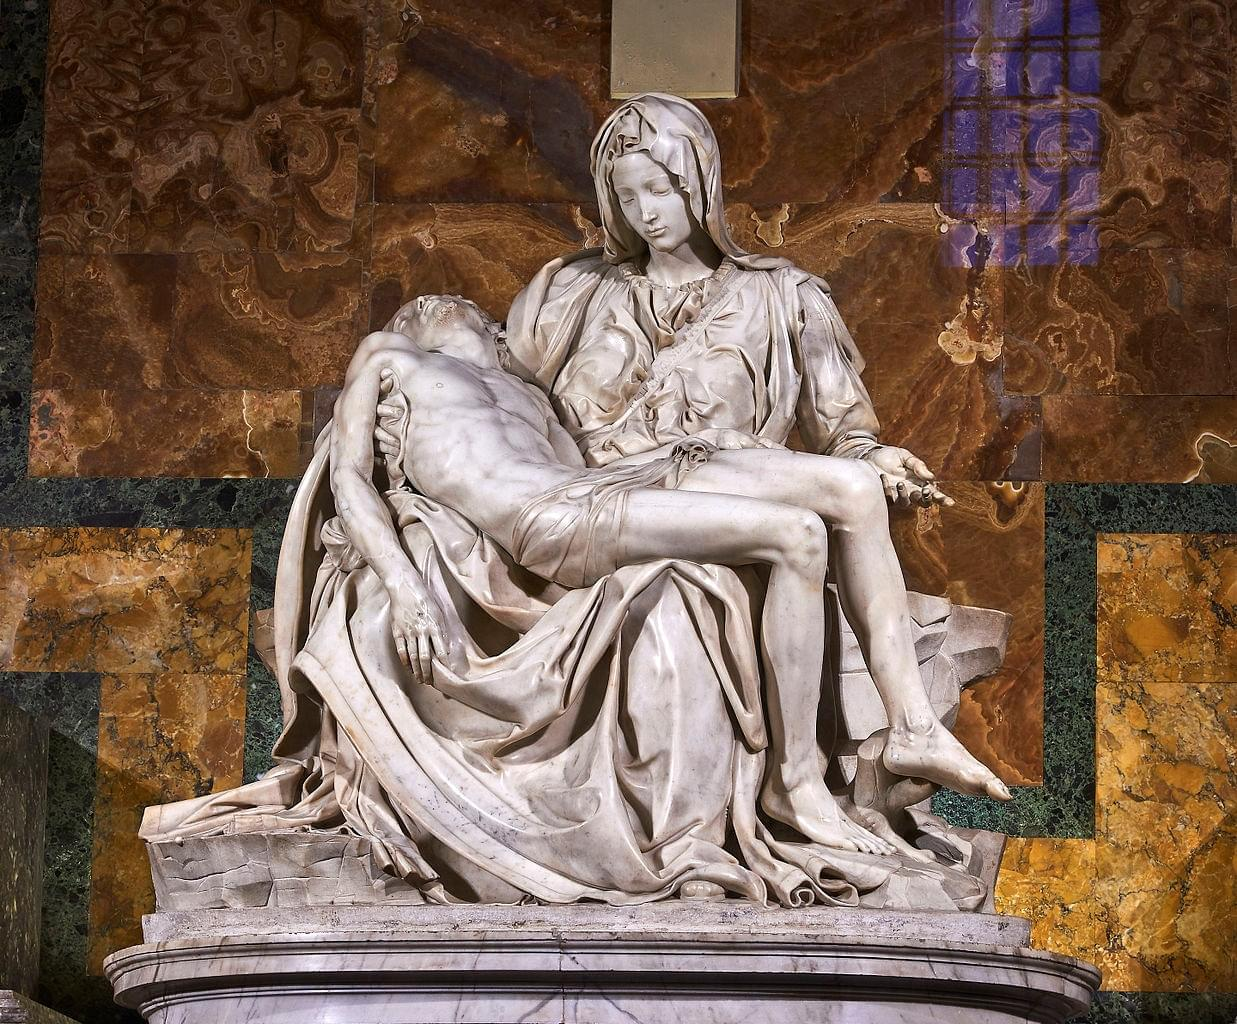 La Pieta: the work of Michelangelo